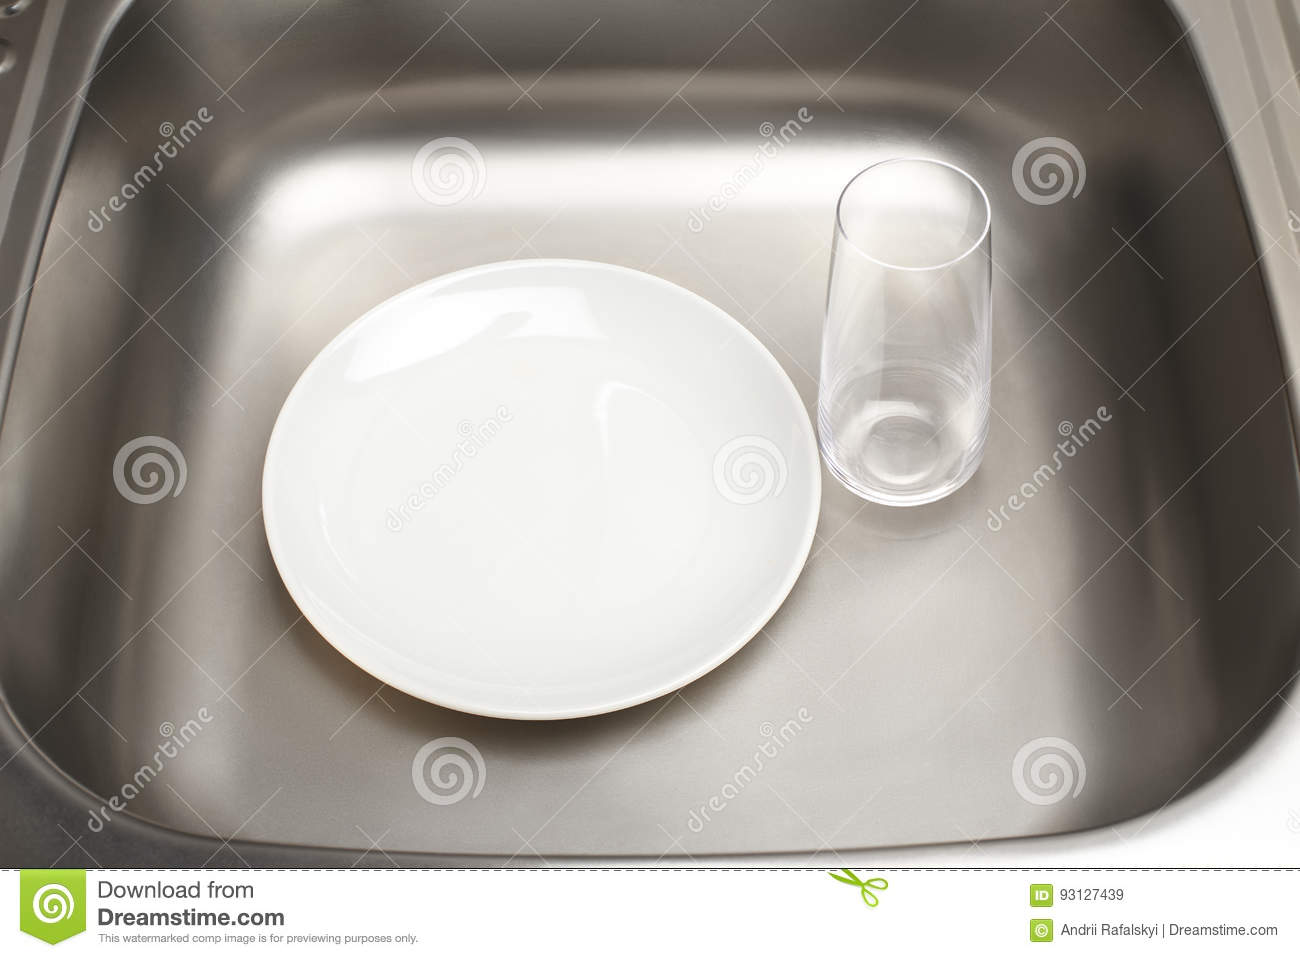 How To Clean A White Kitchen Sink